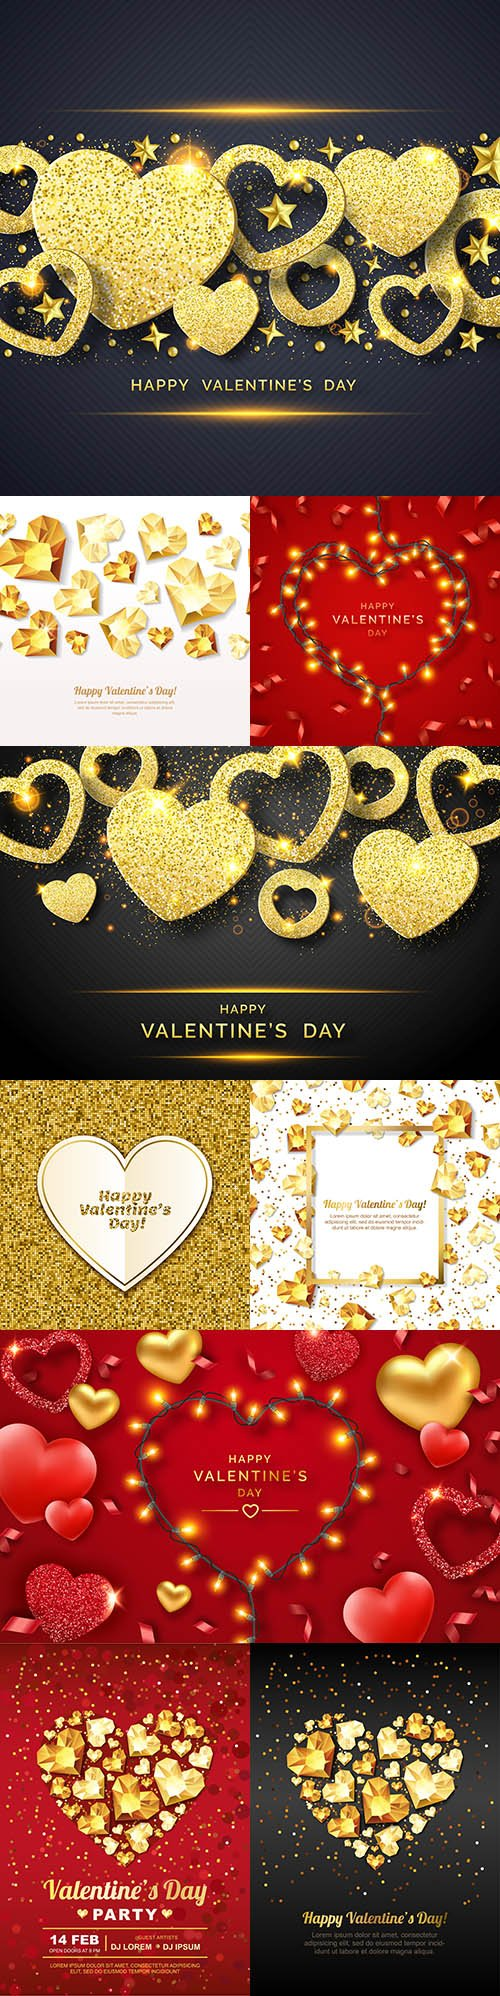 Happy Valentine's Day romantic decorative illustrations 25